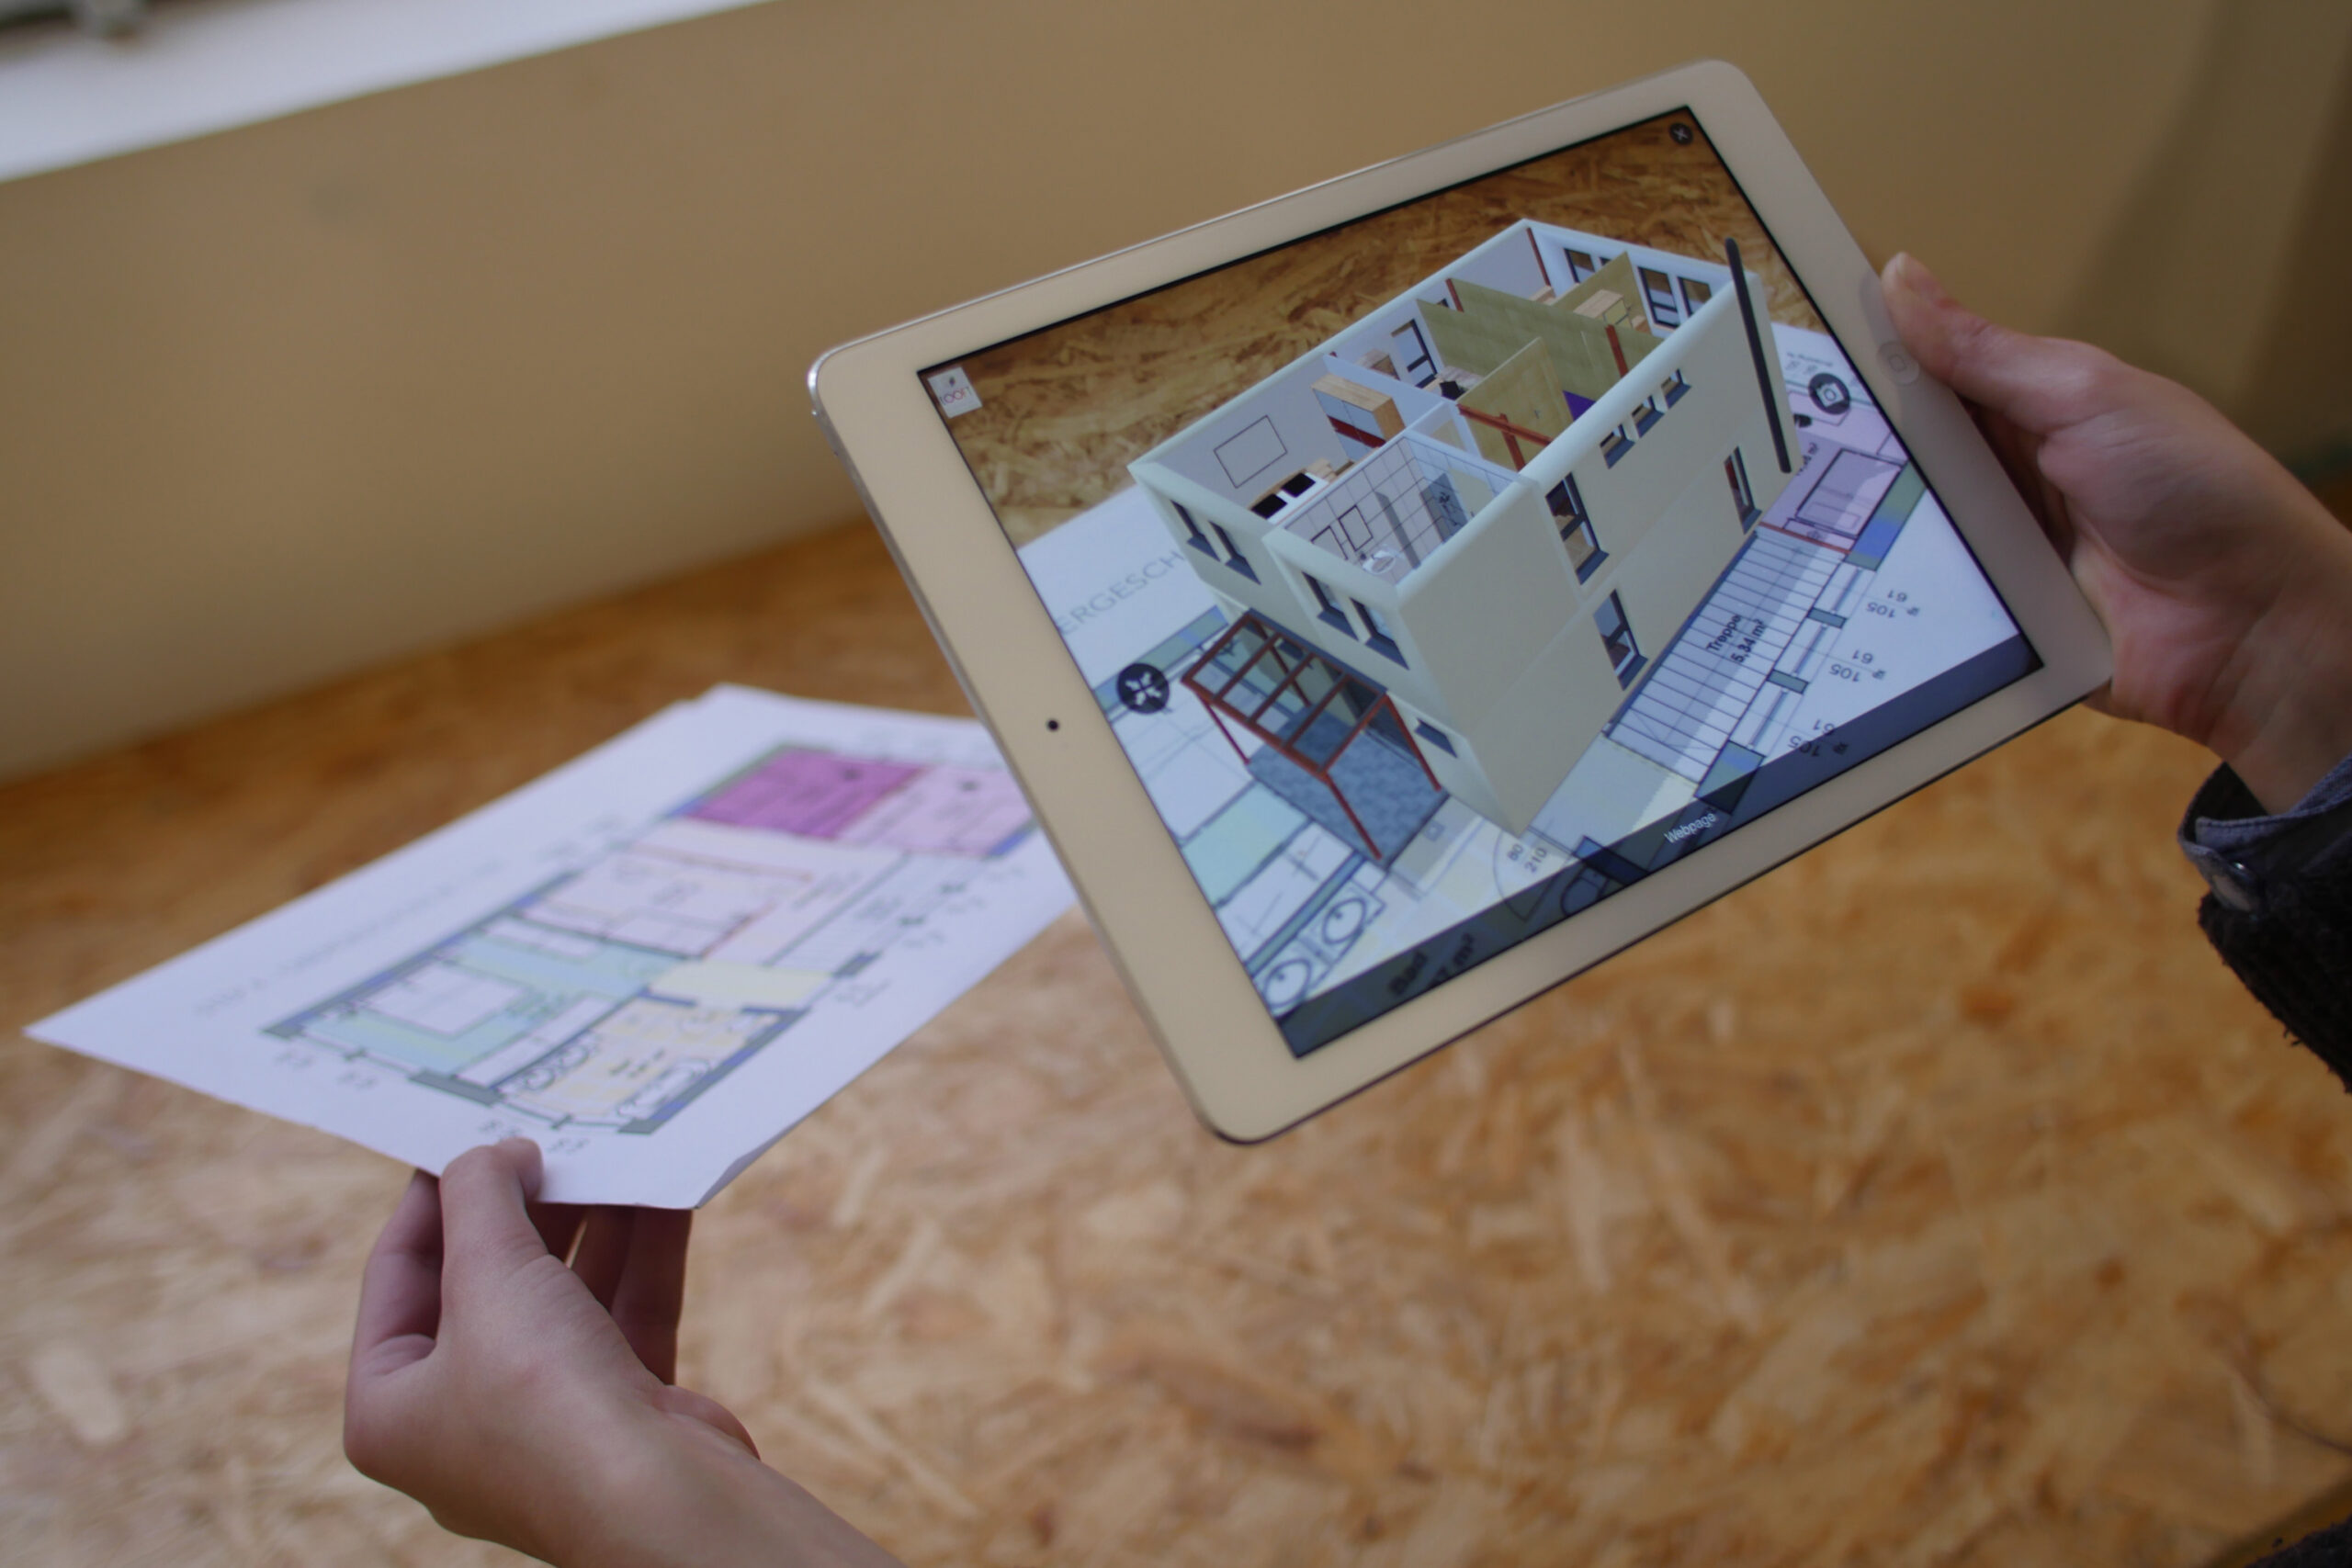 7 Augmented Reality Use Cases in Architecture and Construction